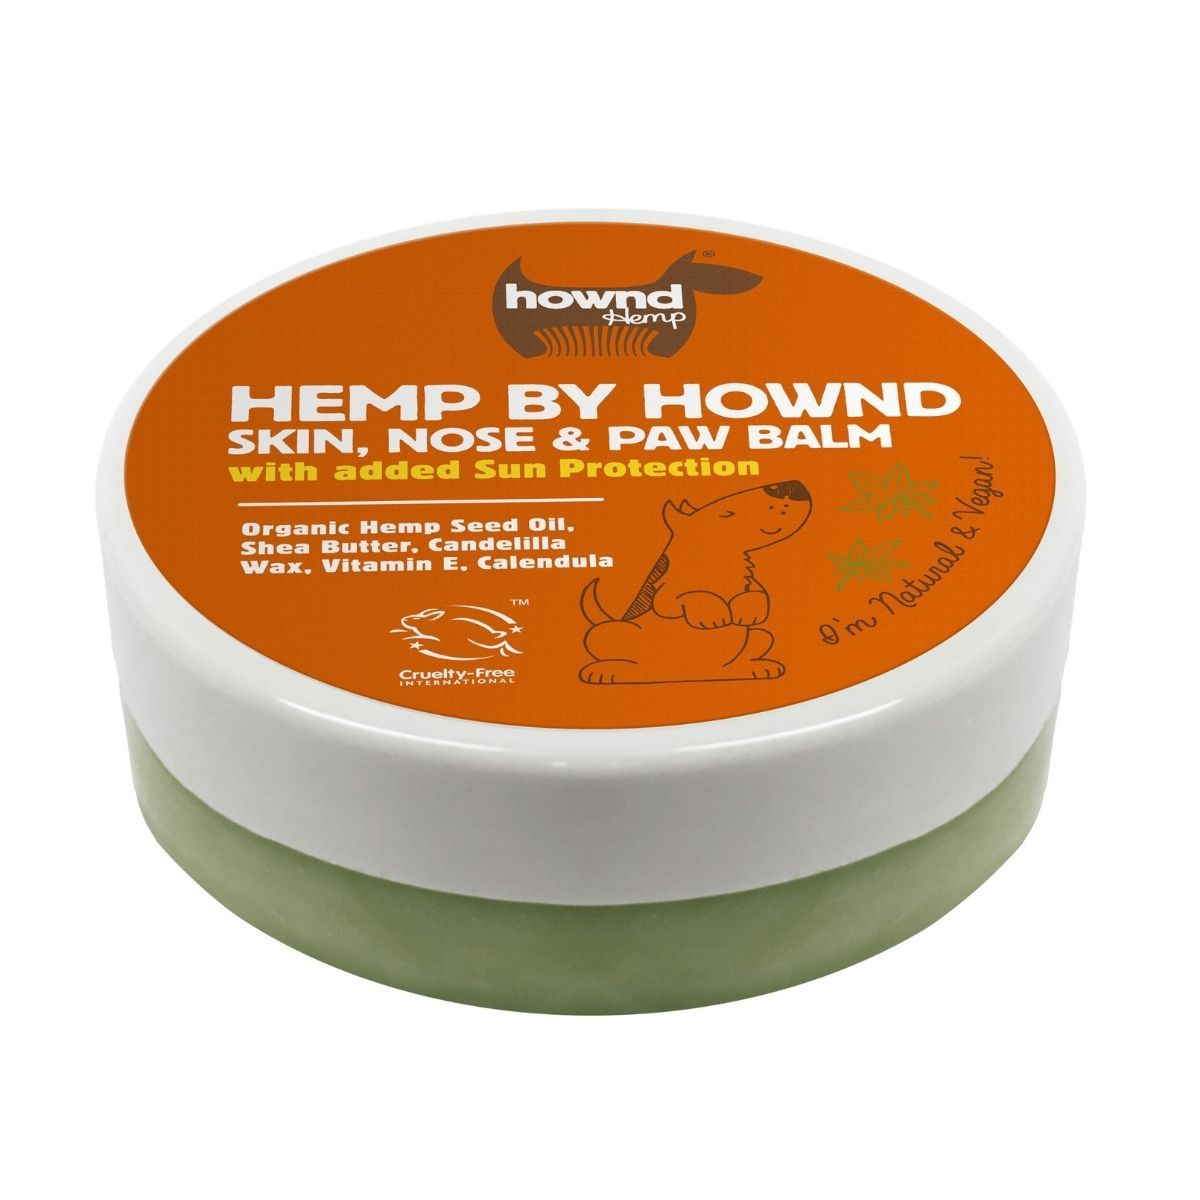 Hemp by Hownd Skin, Nose and Paw Balm with Sun Protection (50g) - Hownd